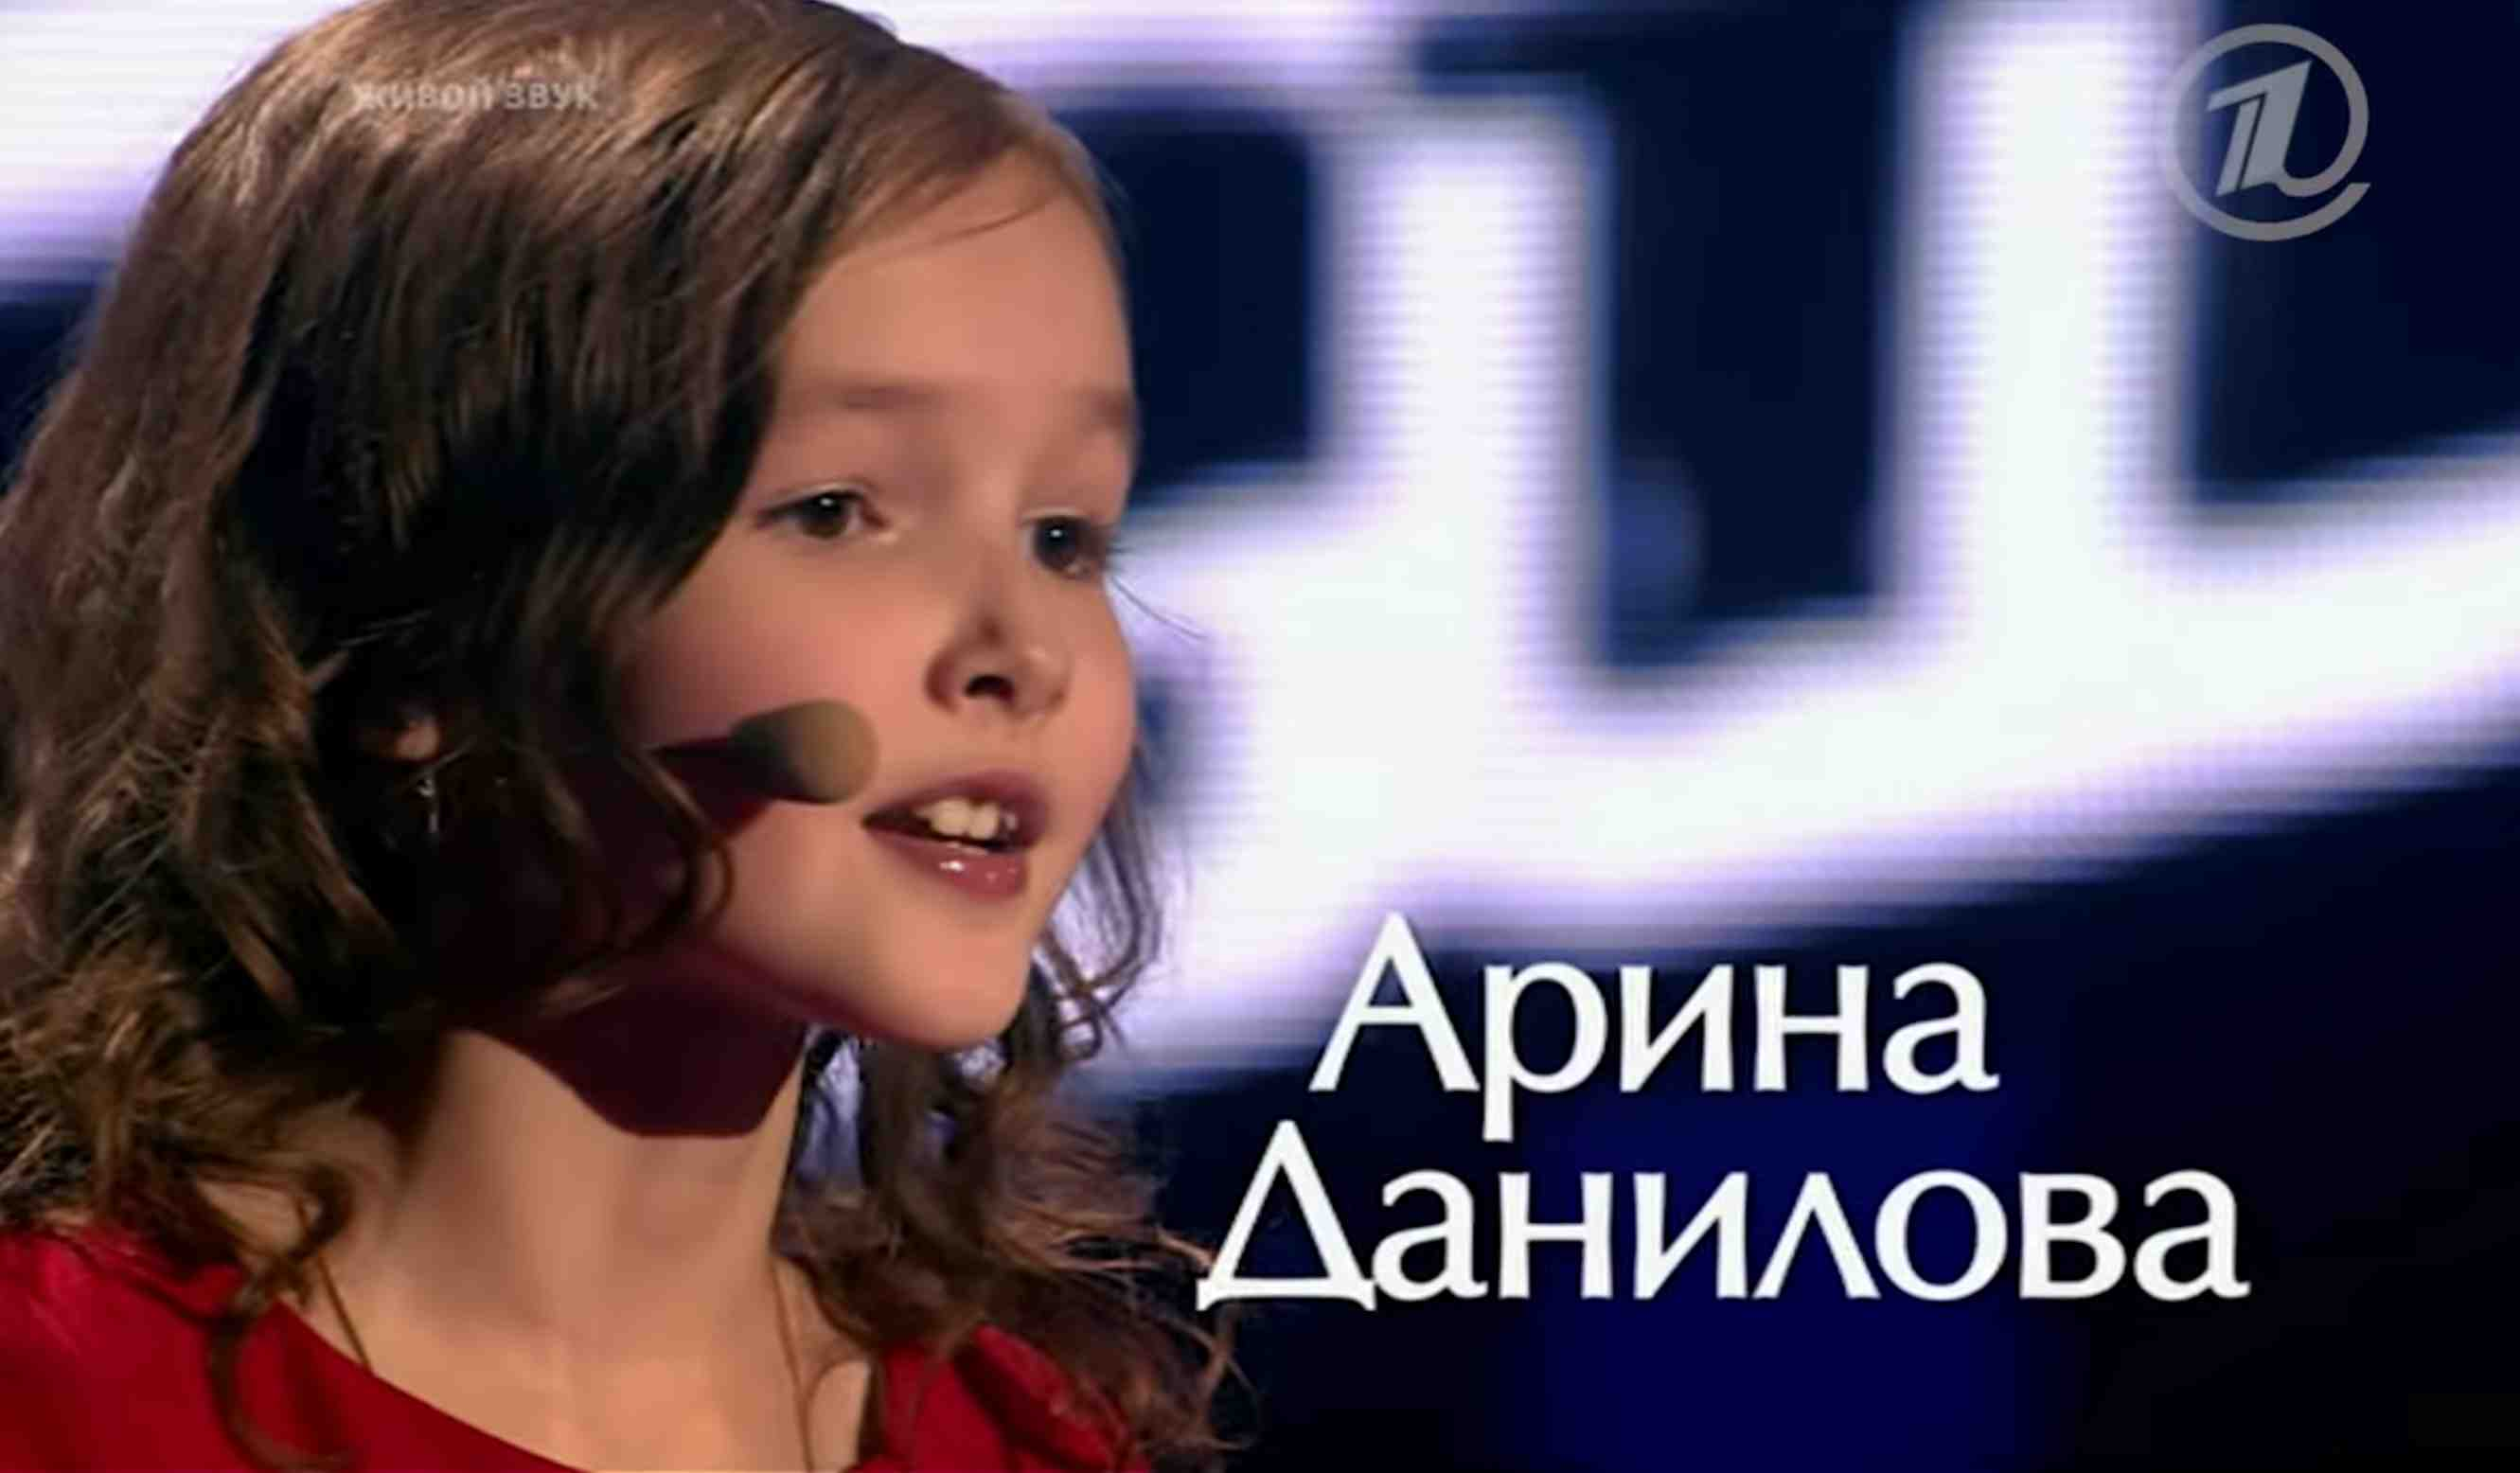 Junior Eurovision: Should Arina Danilova sing for Russia?